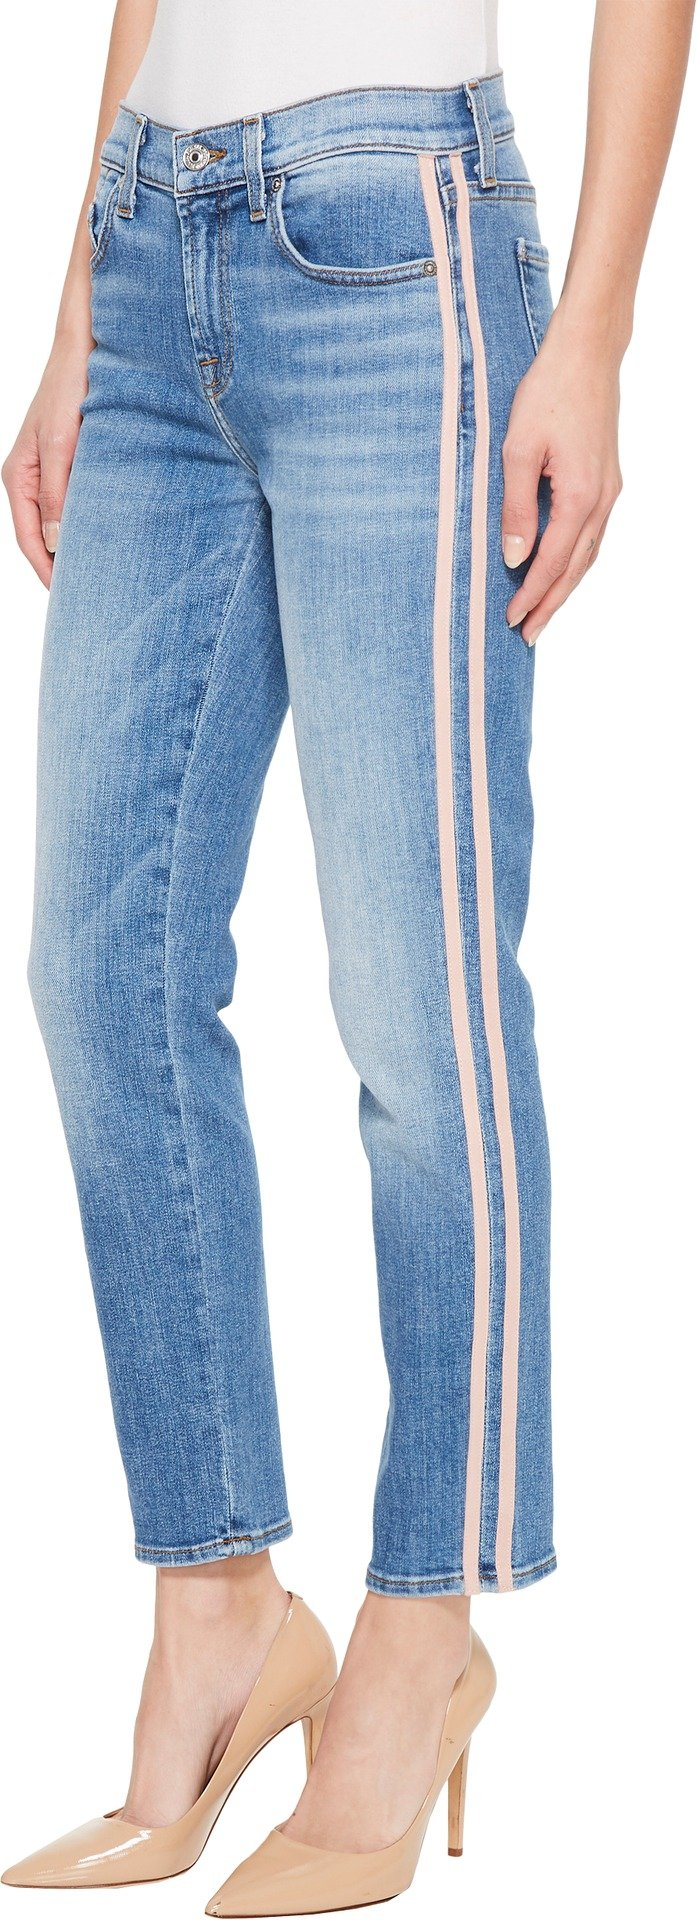 7 For All Mankind Women's Roxanne Ankle w/Pink Faux Suede Stripes in Vintage Blue Dunes Vintage Blue Dunes 27 27